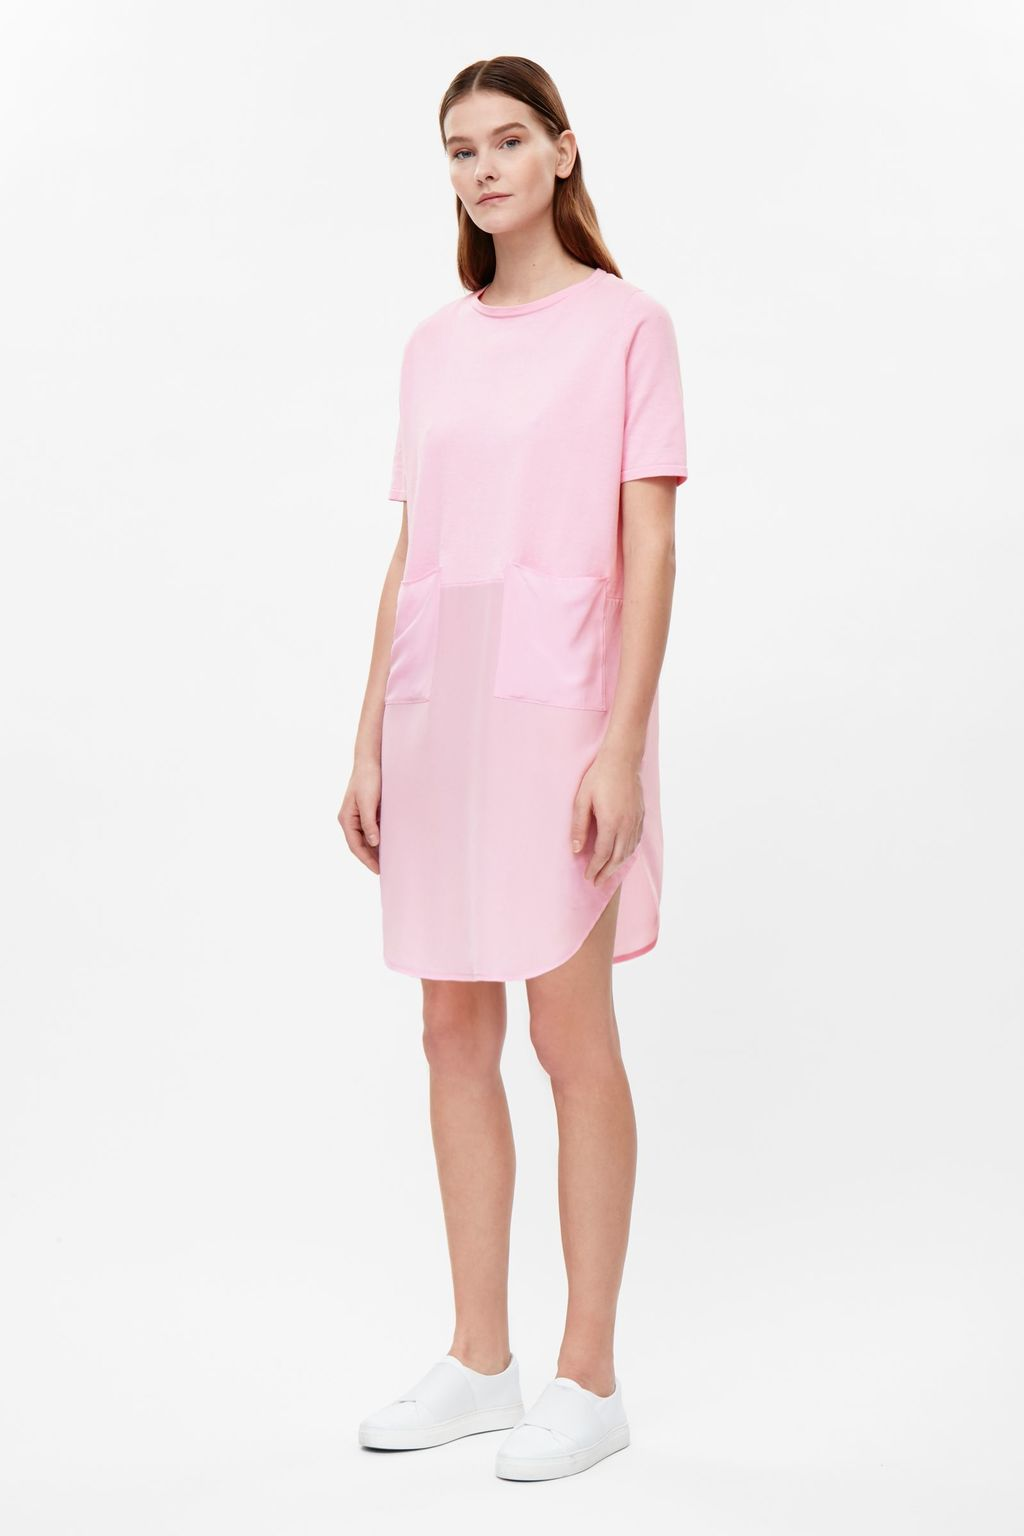 Oversized Dress With Silk Skirt - style: shift; pattern: plain; predominant colour: pink; occasions: evening; length: just above the knee; fit: body skimming; fibres: cotton - 100%; neckline: crew; sleeve length: long sleeve; sleeve style: standard; pattern type: fabric; texture group: other - light to midweight; season: s/s 2016; wardrobe: event